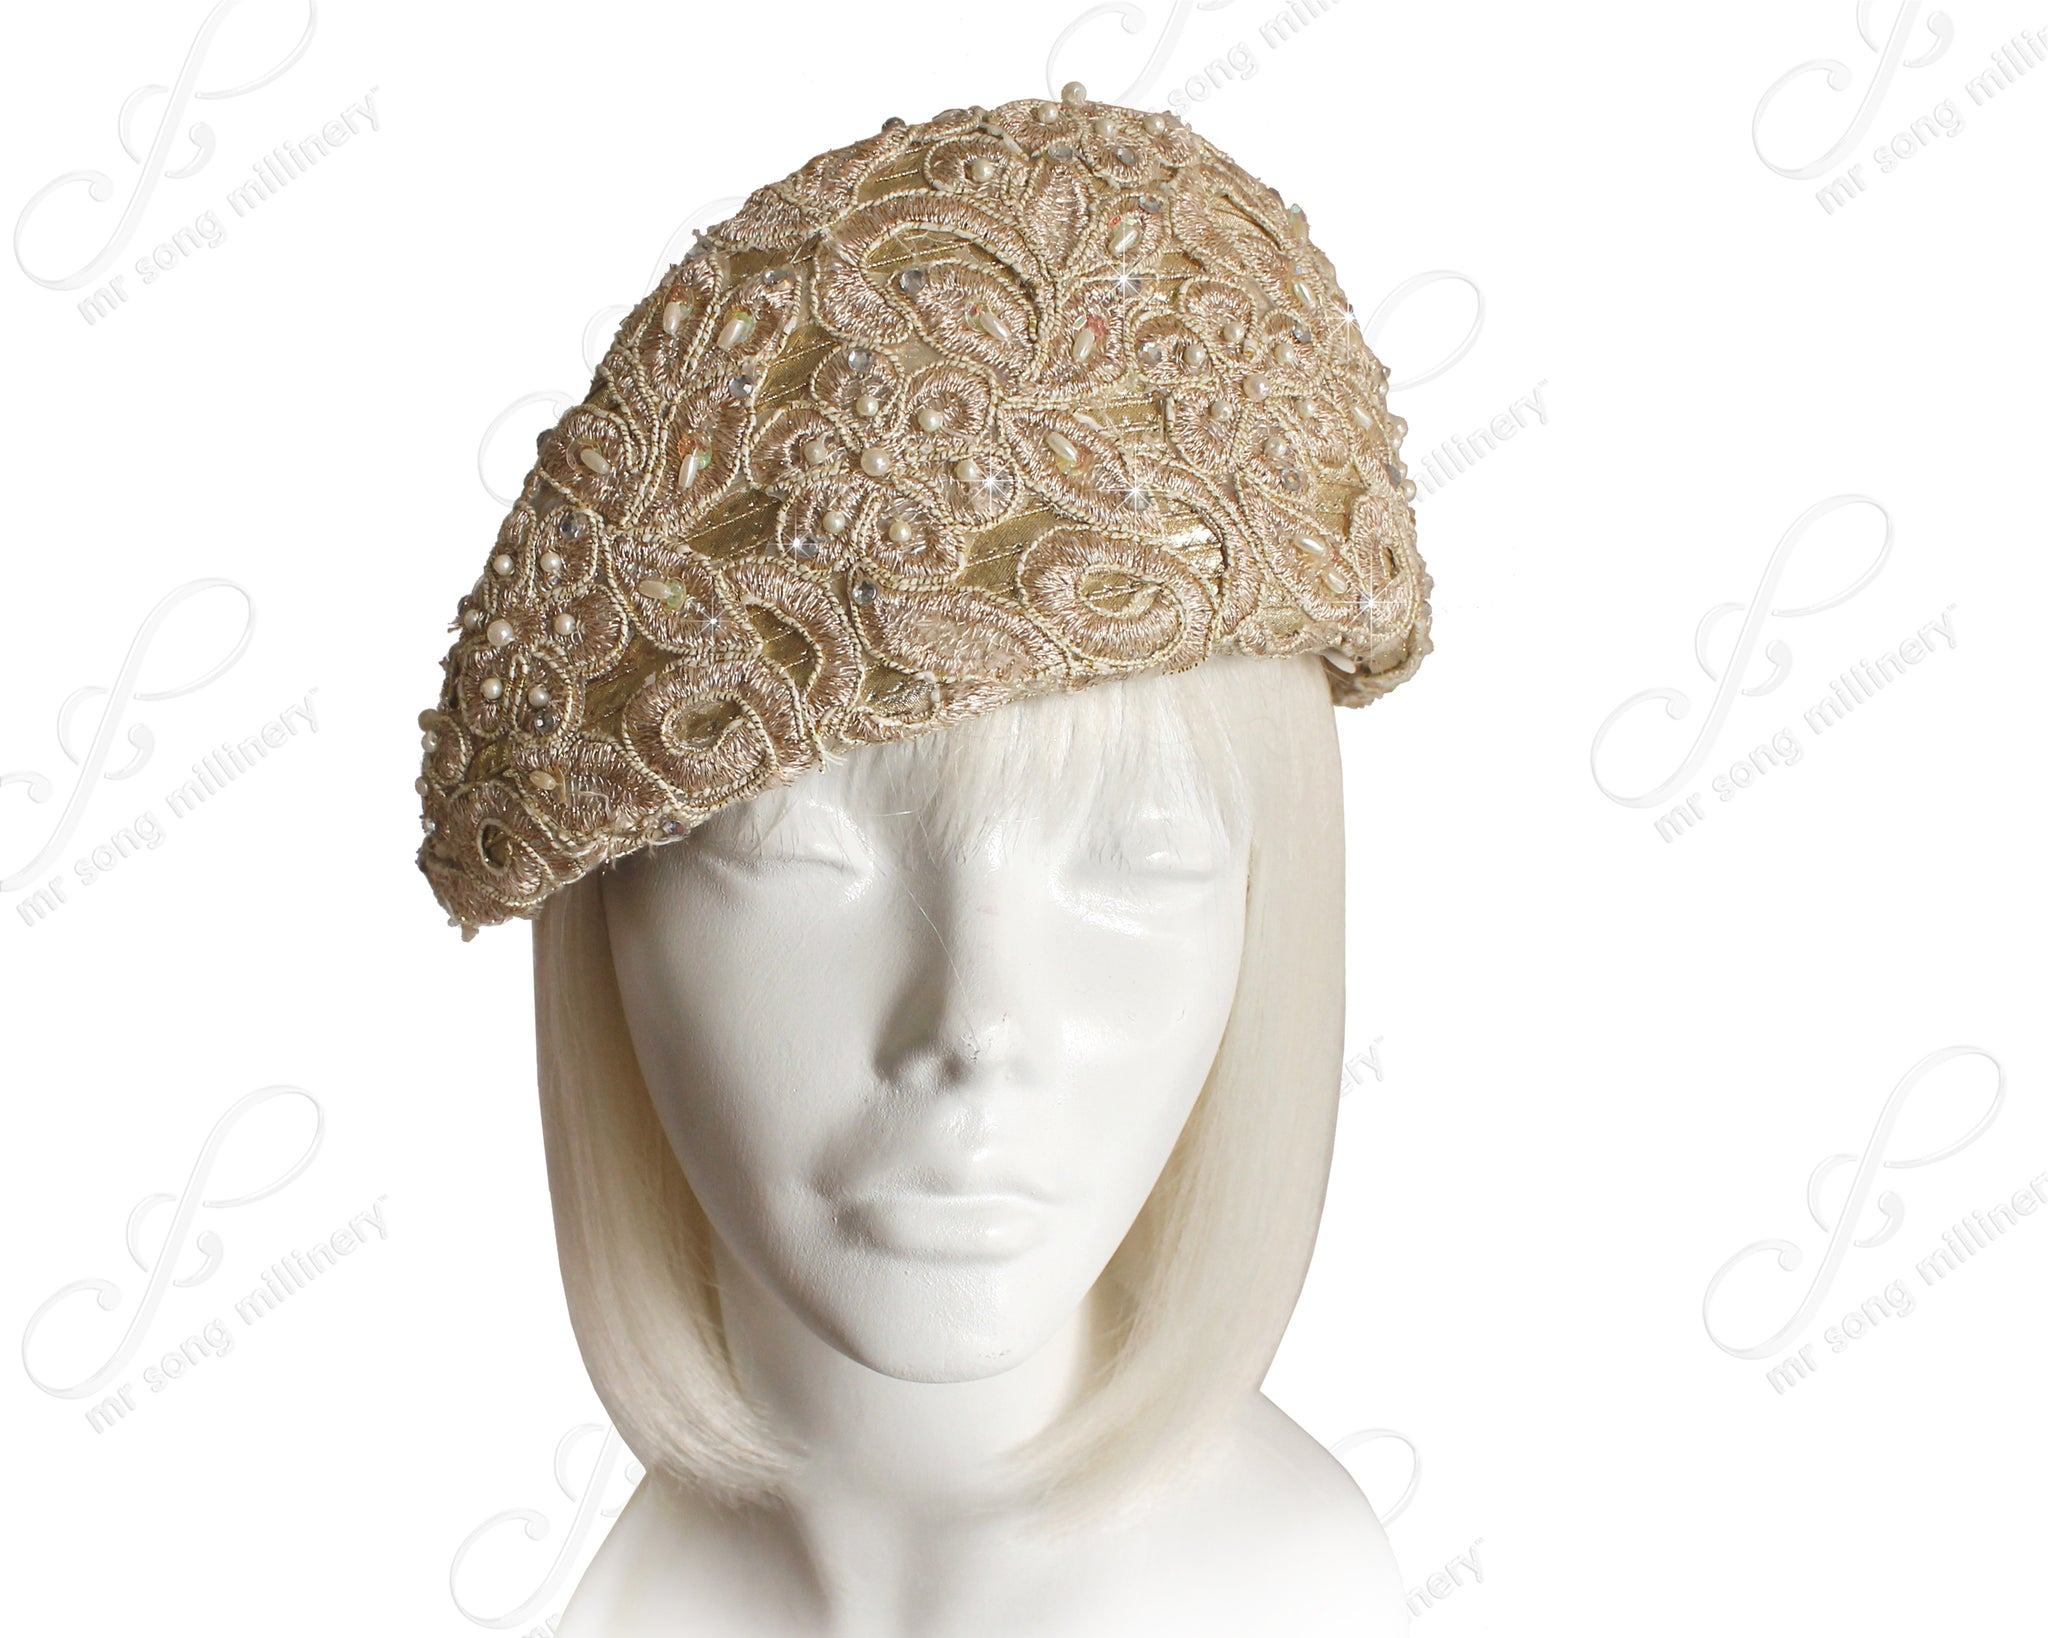 Mr. Song Millinery Structured Beret Cloche Hat Pavéd Premium Lace - Gold